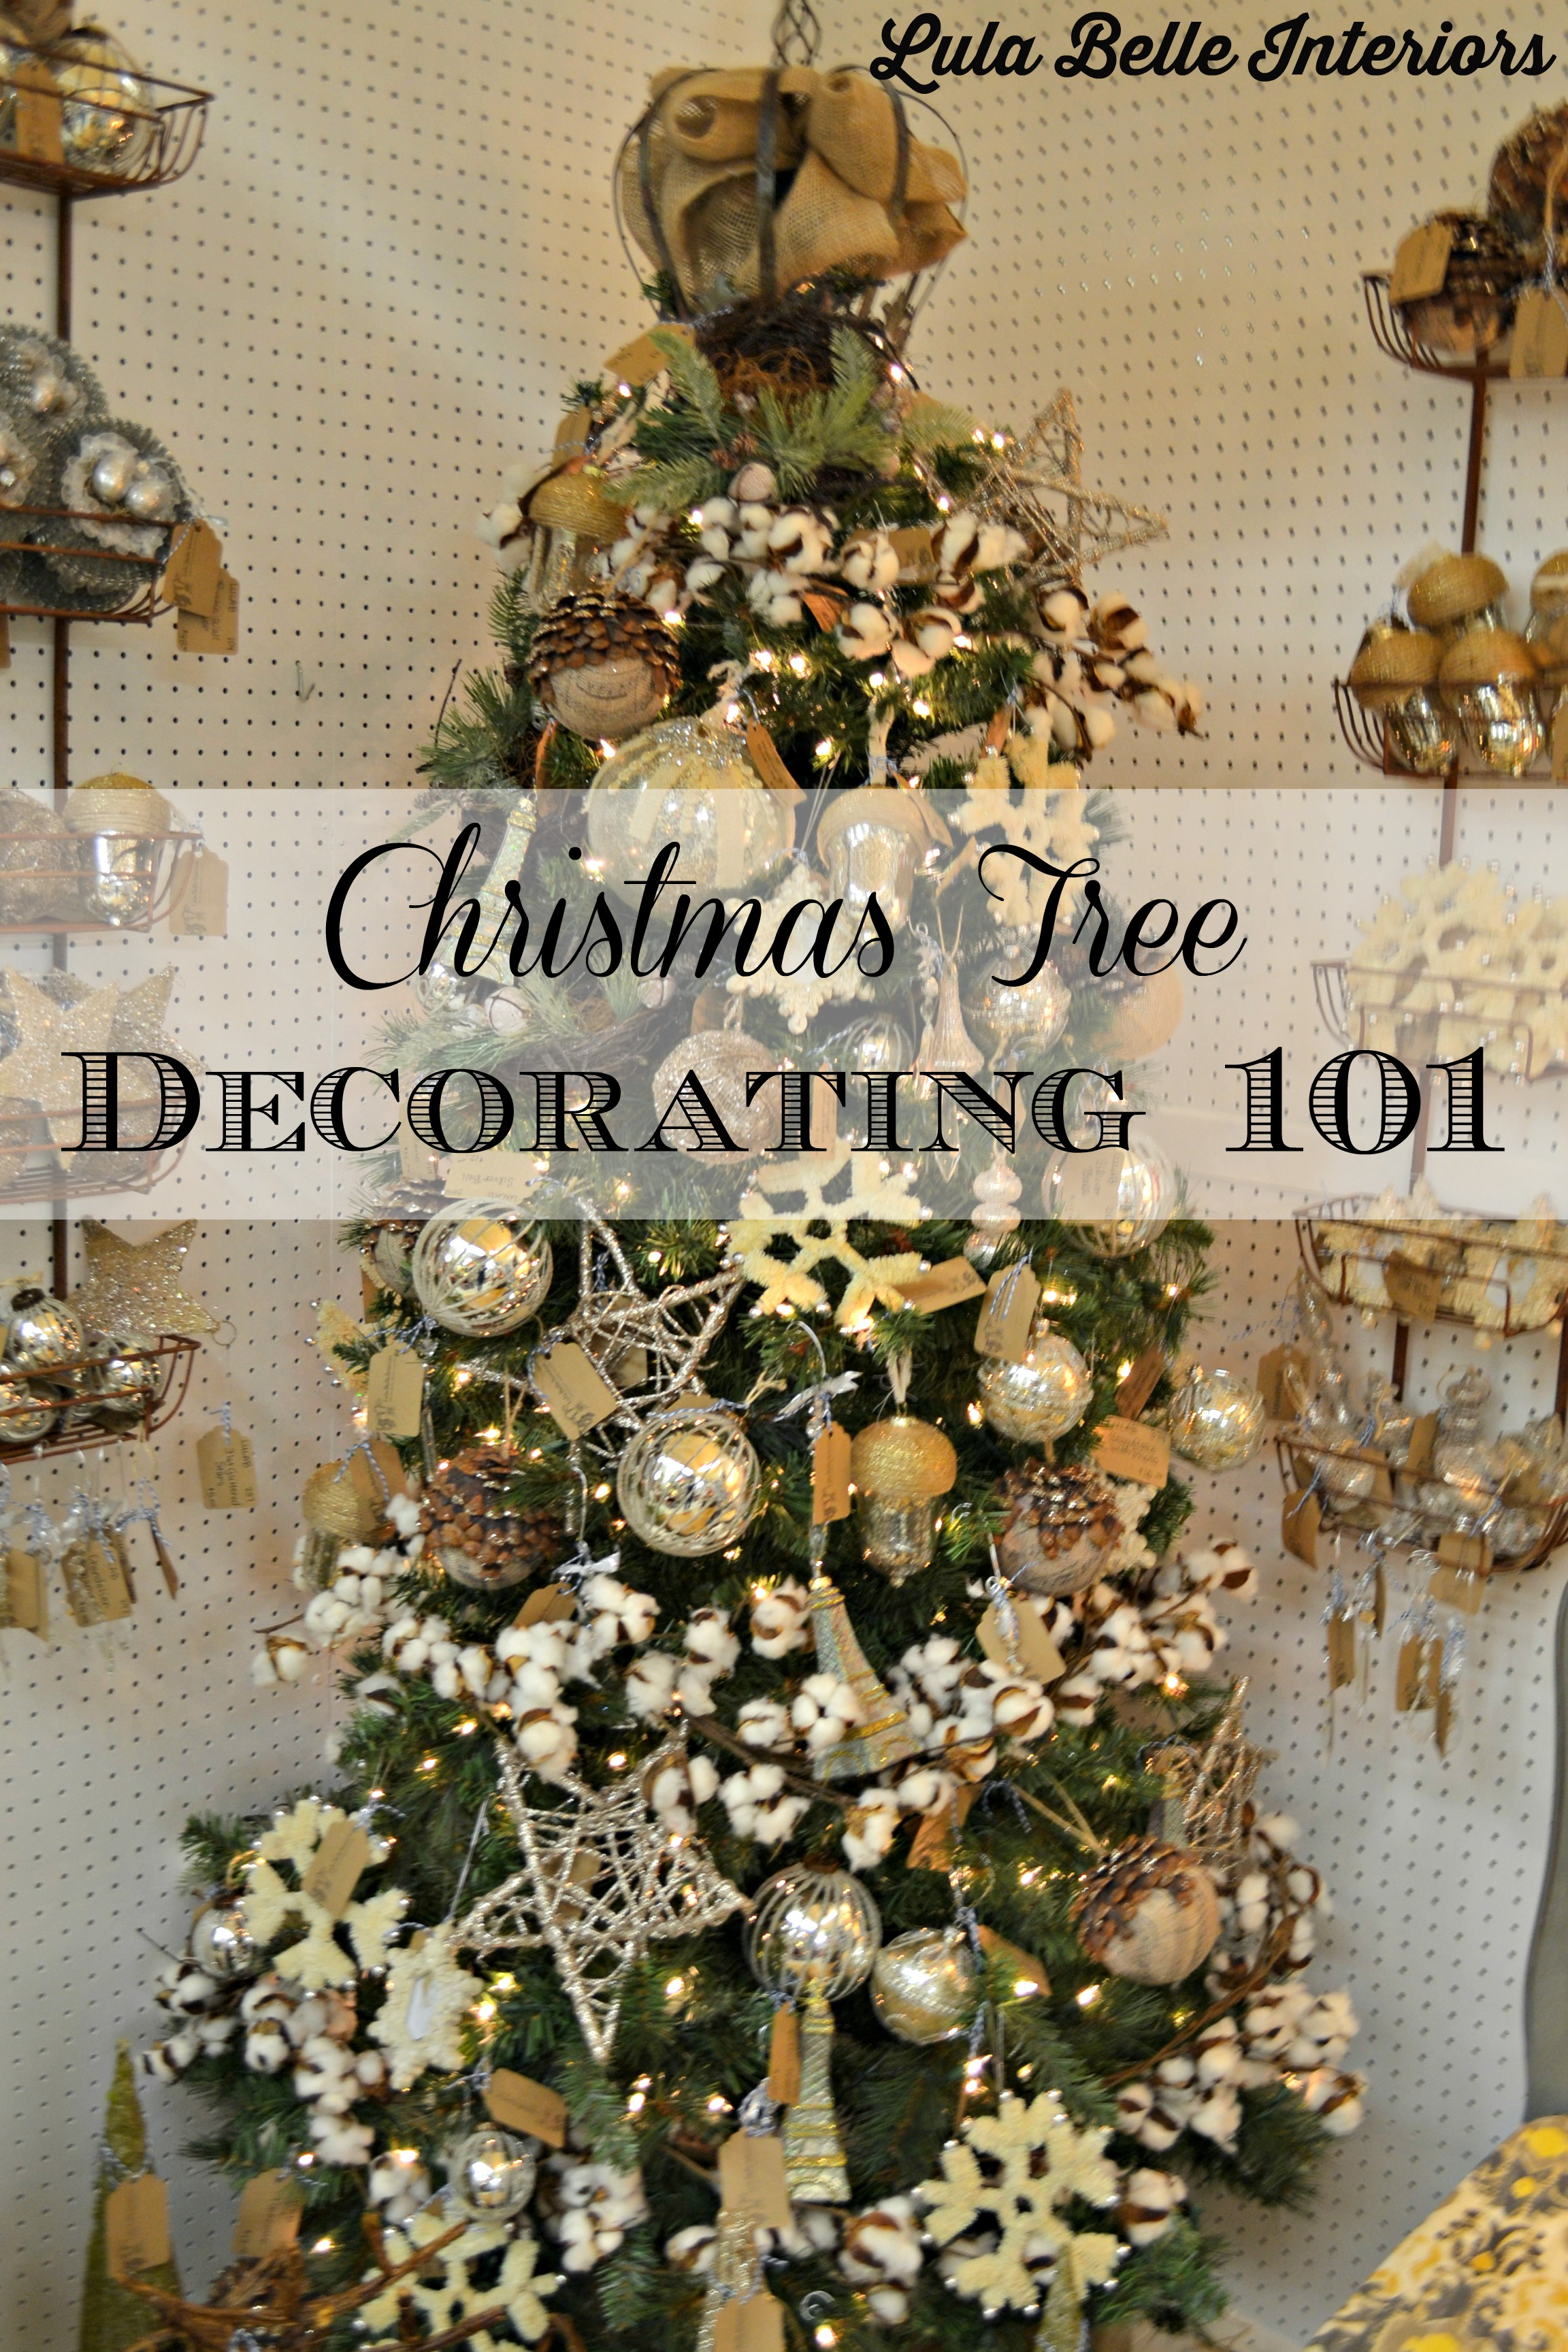 Living Room Decorating 101 christmas tree decorating 101 lula belle interiors trees can be as simple adding lights and ornaments with little thought given to the process however there are times when